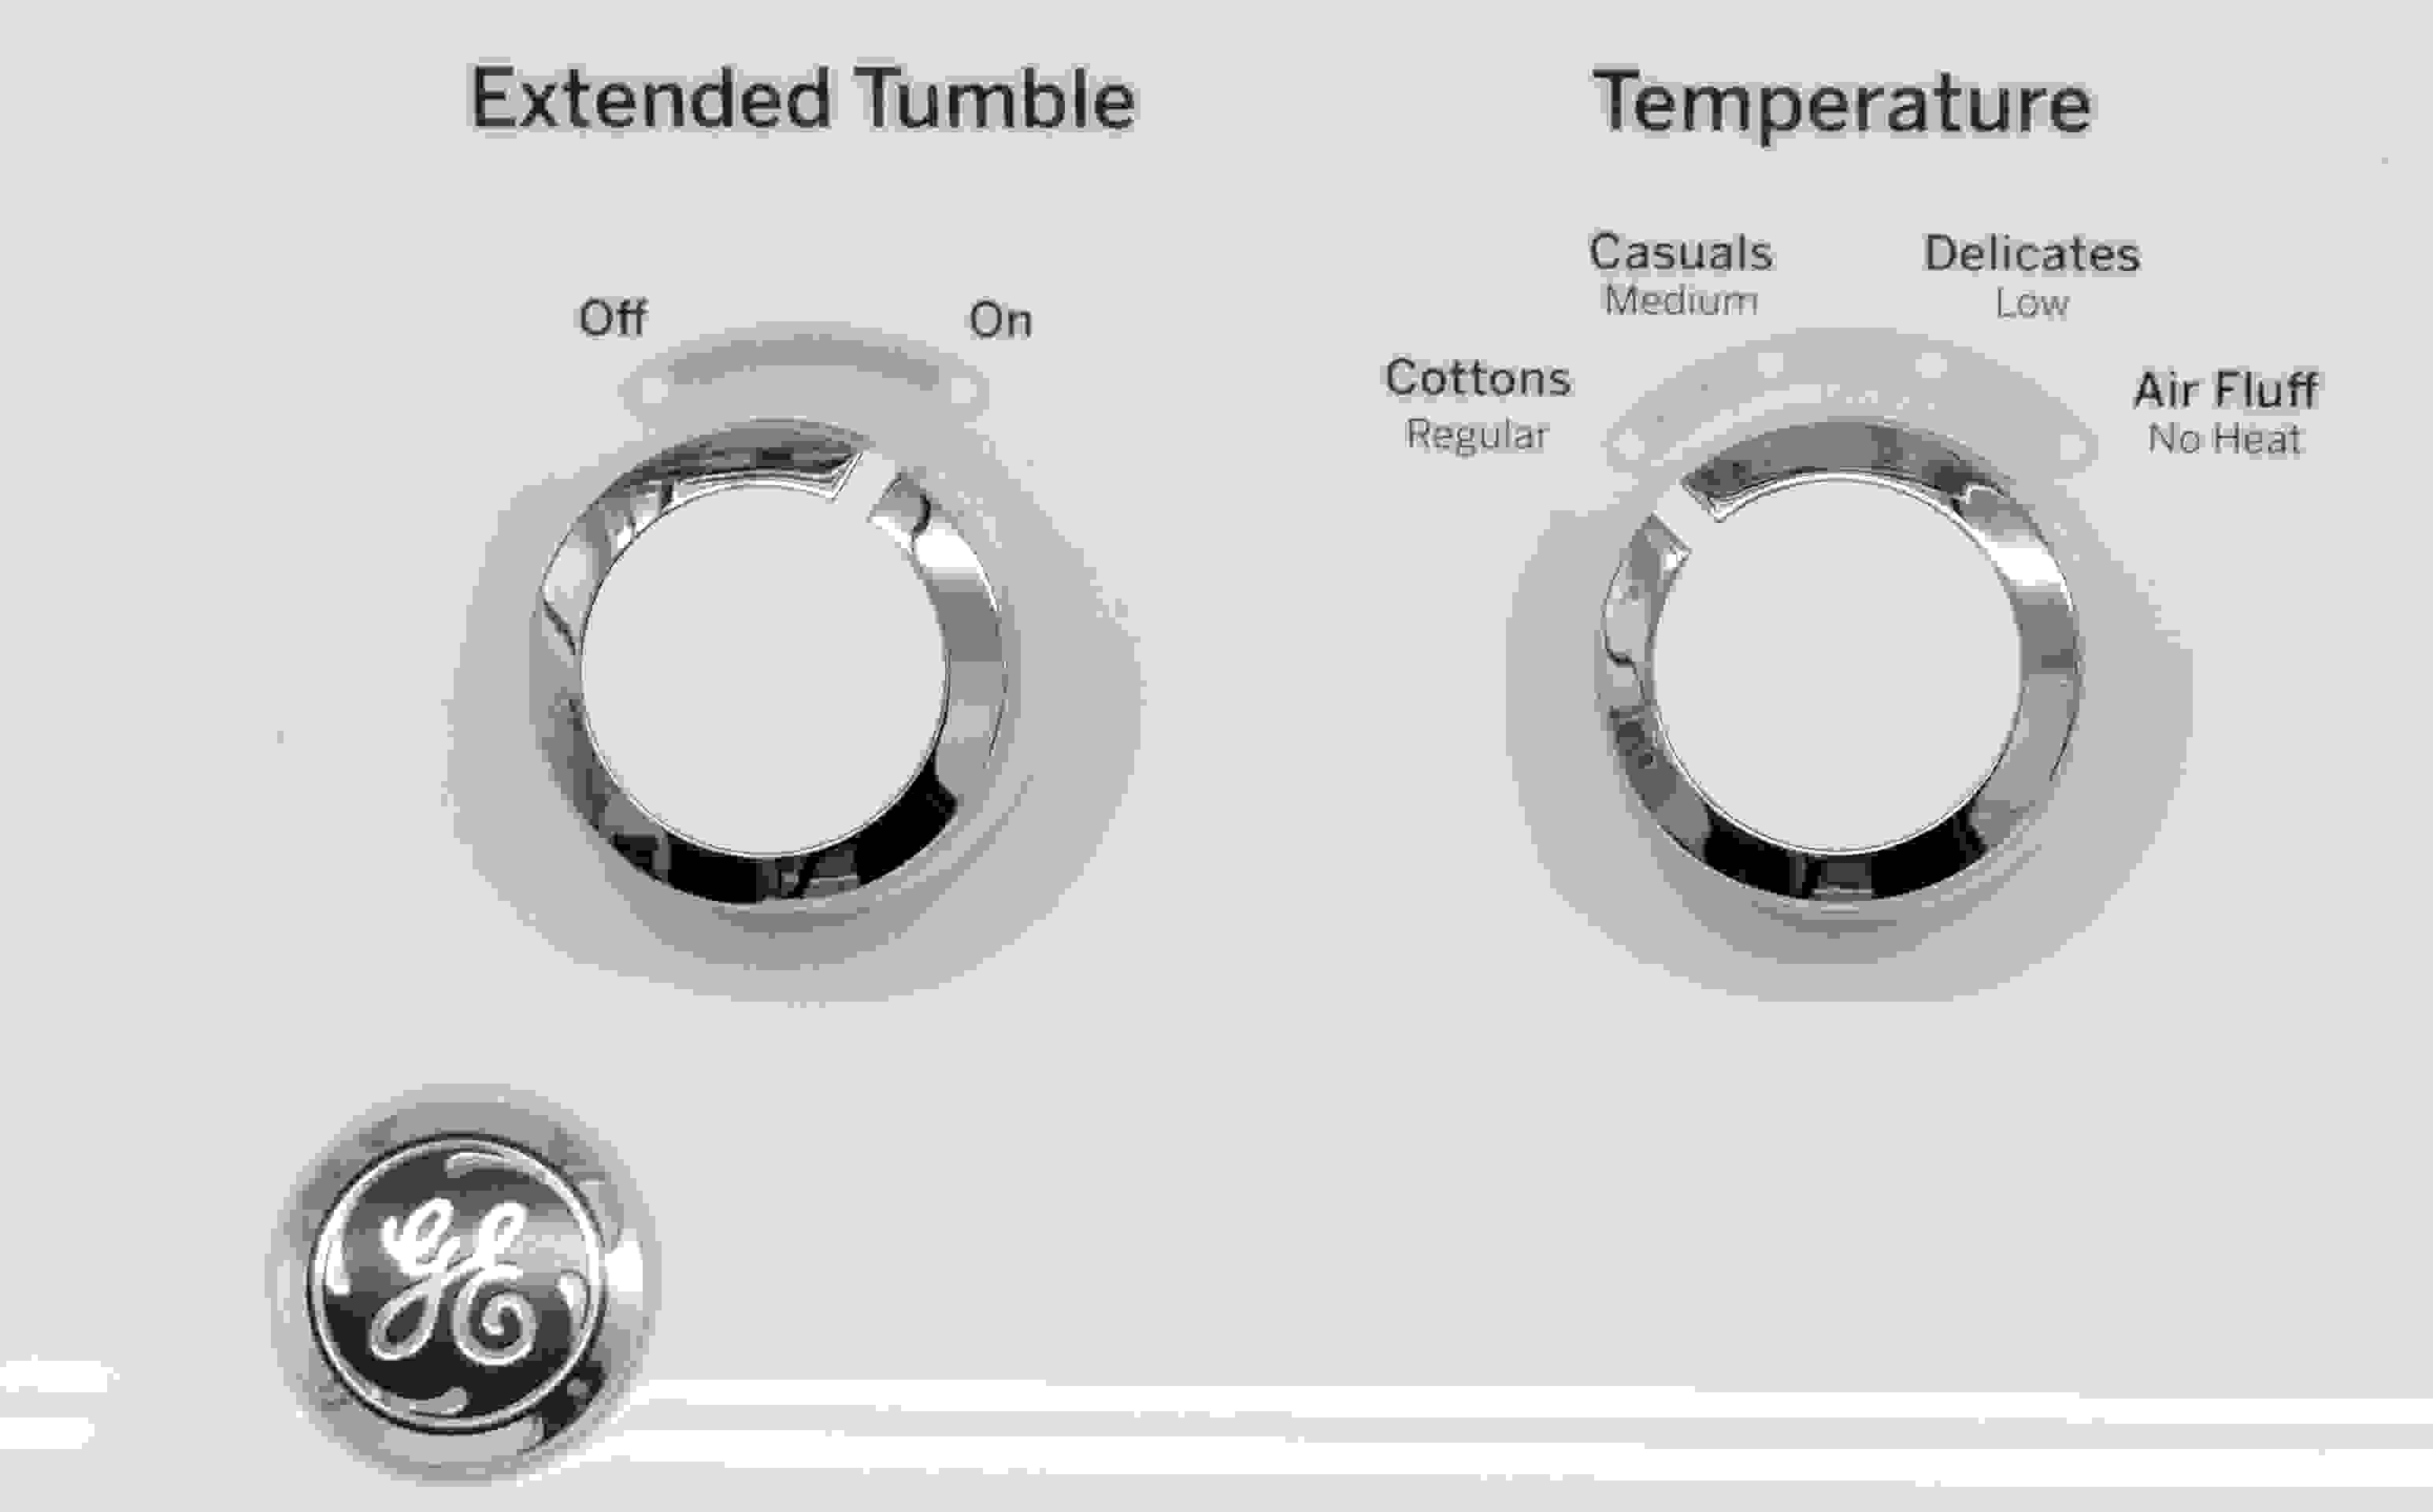 All you get with the basic GE GTD42EASJWW is a manual temperature select and the option to turn Extended Tumble on or off.